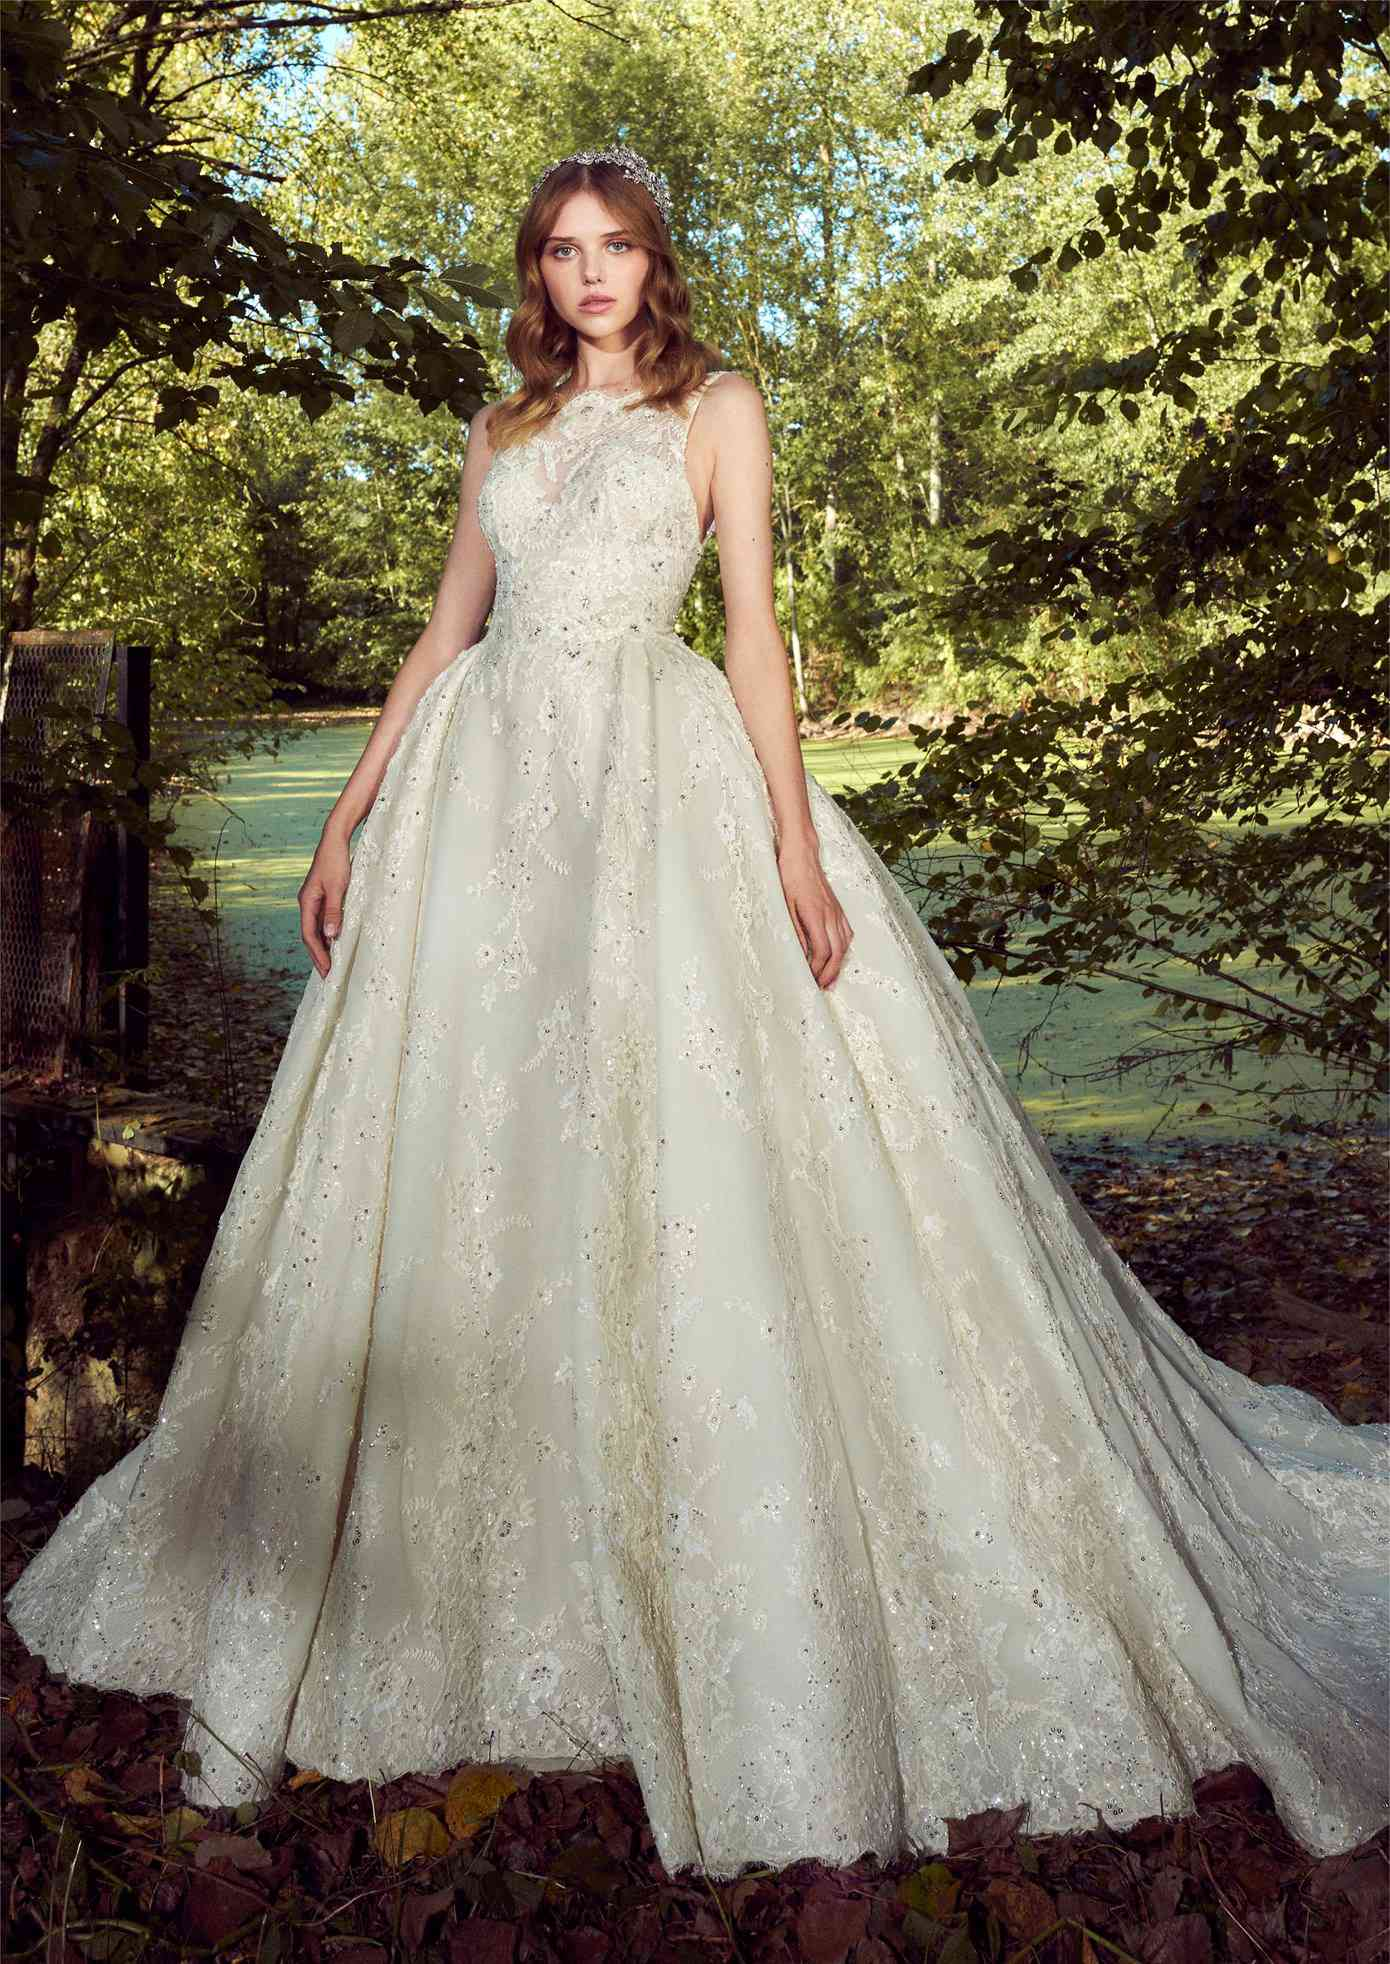 Model in off-white high-neck sleeveless ballgown with allover sequined floral lace embroidery